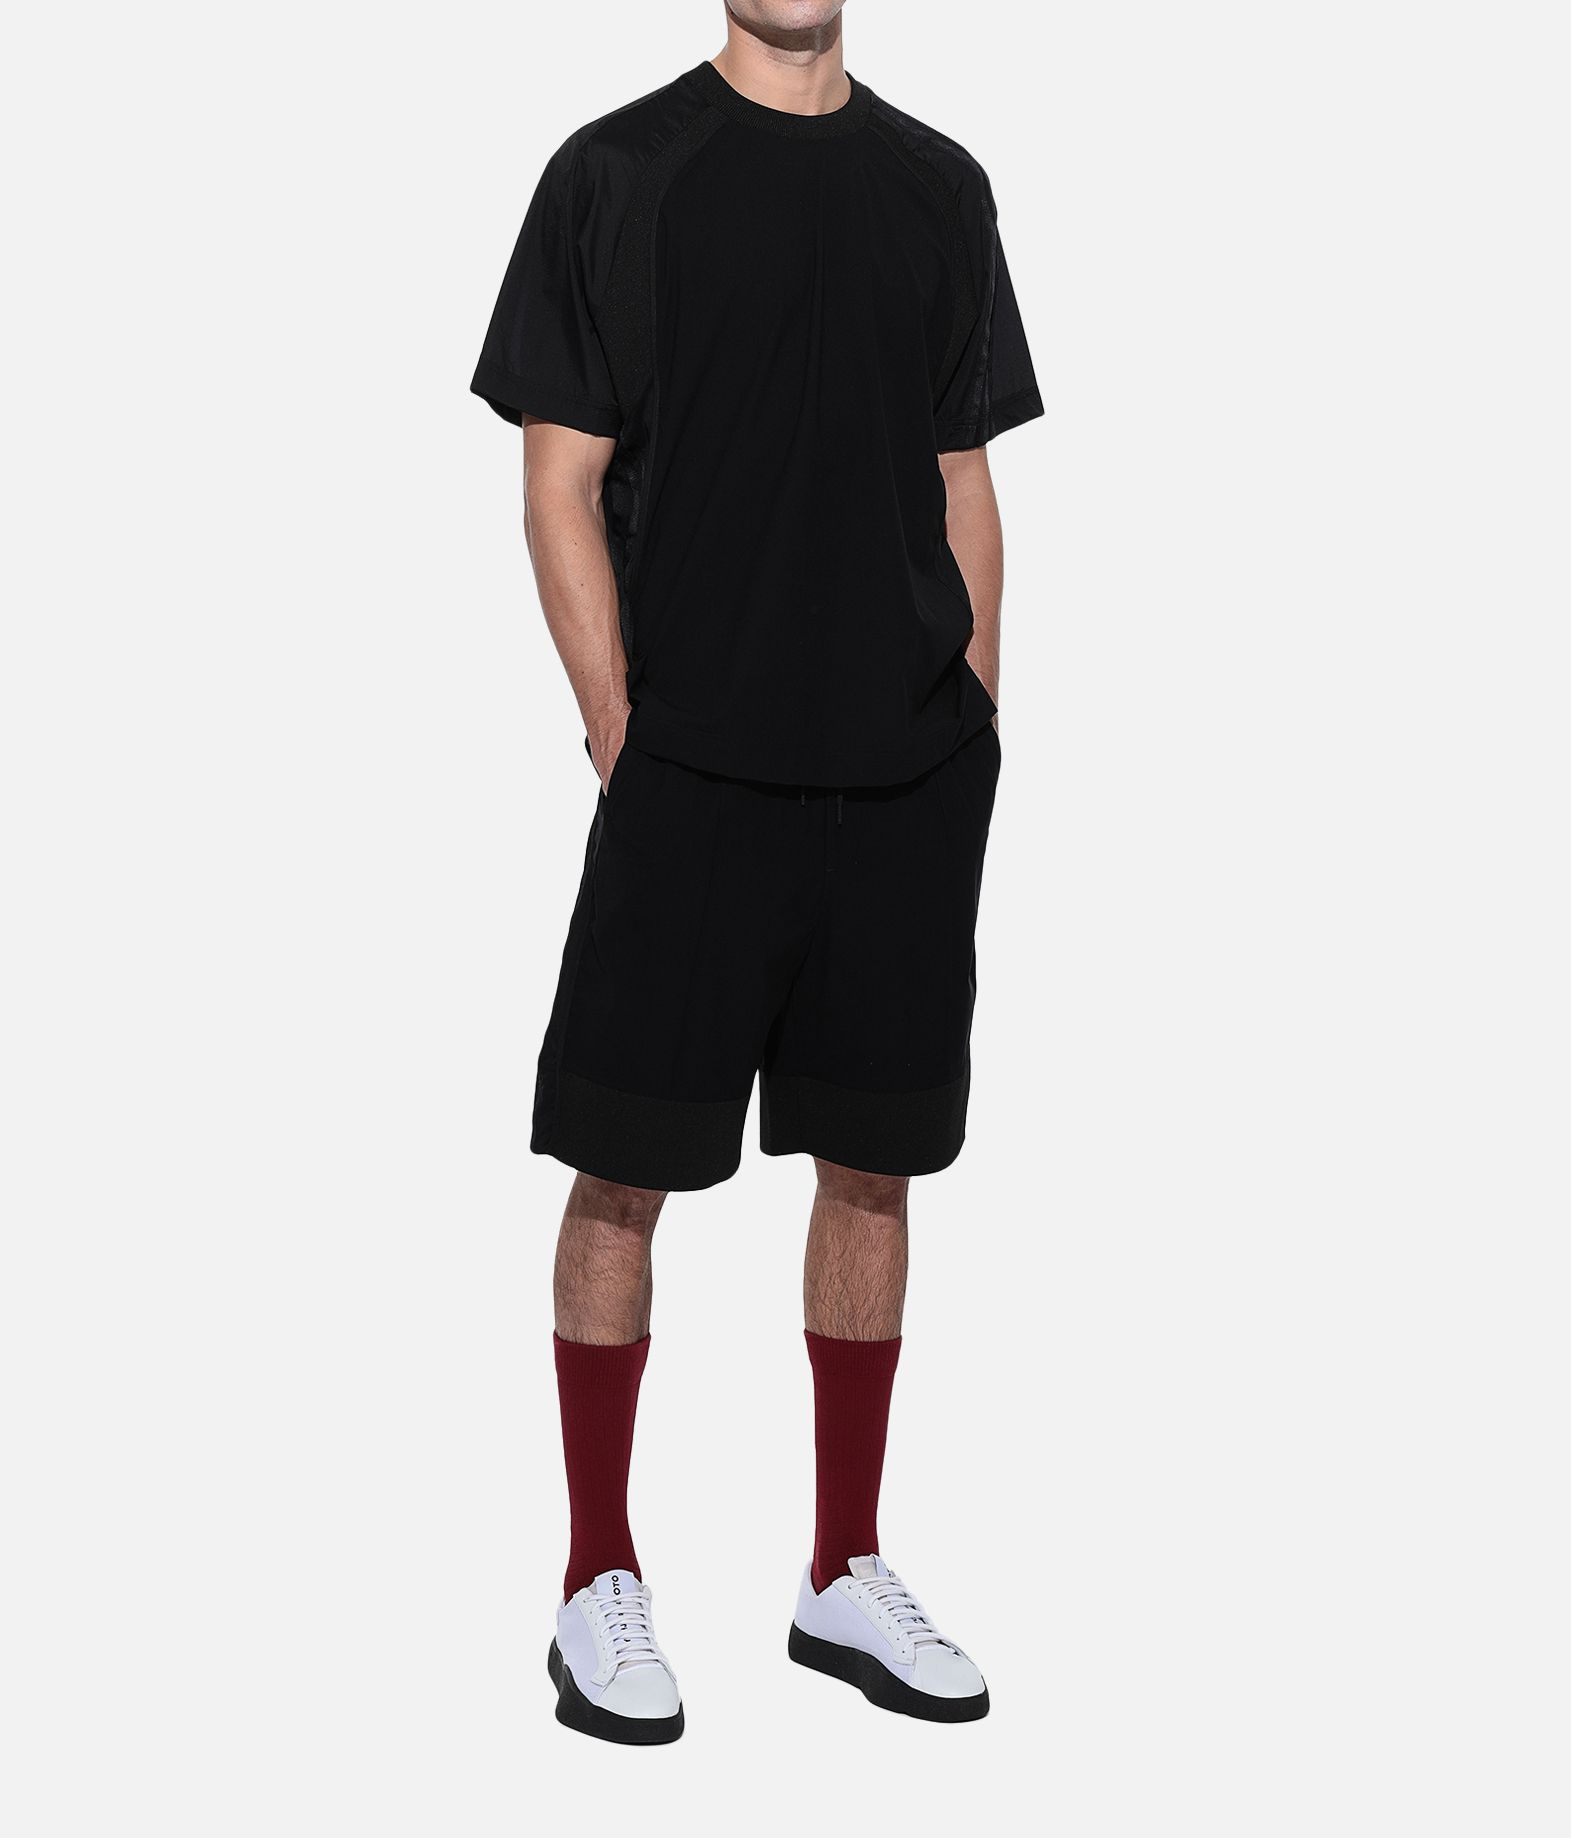 Y-3 Y-3 3-Stripes Material Mix Tee T-shirt maniche corte Uomo a